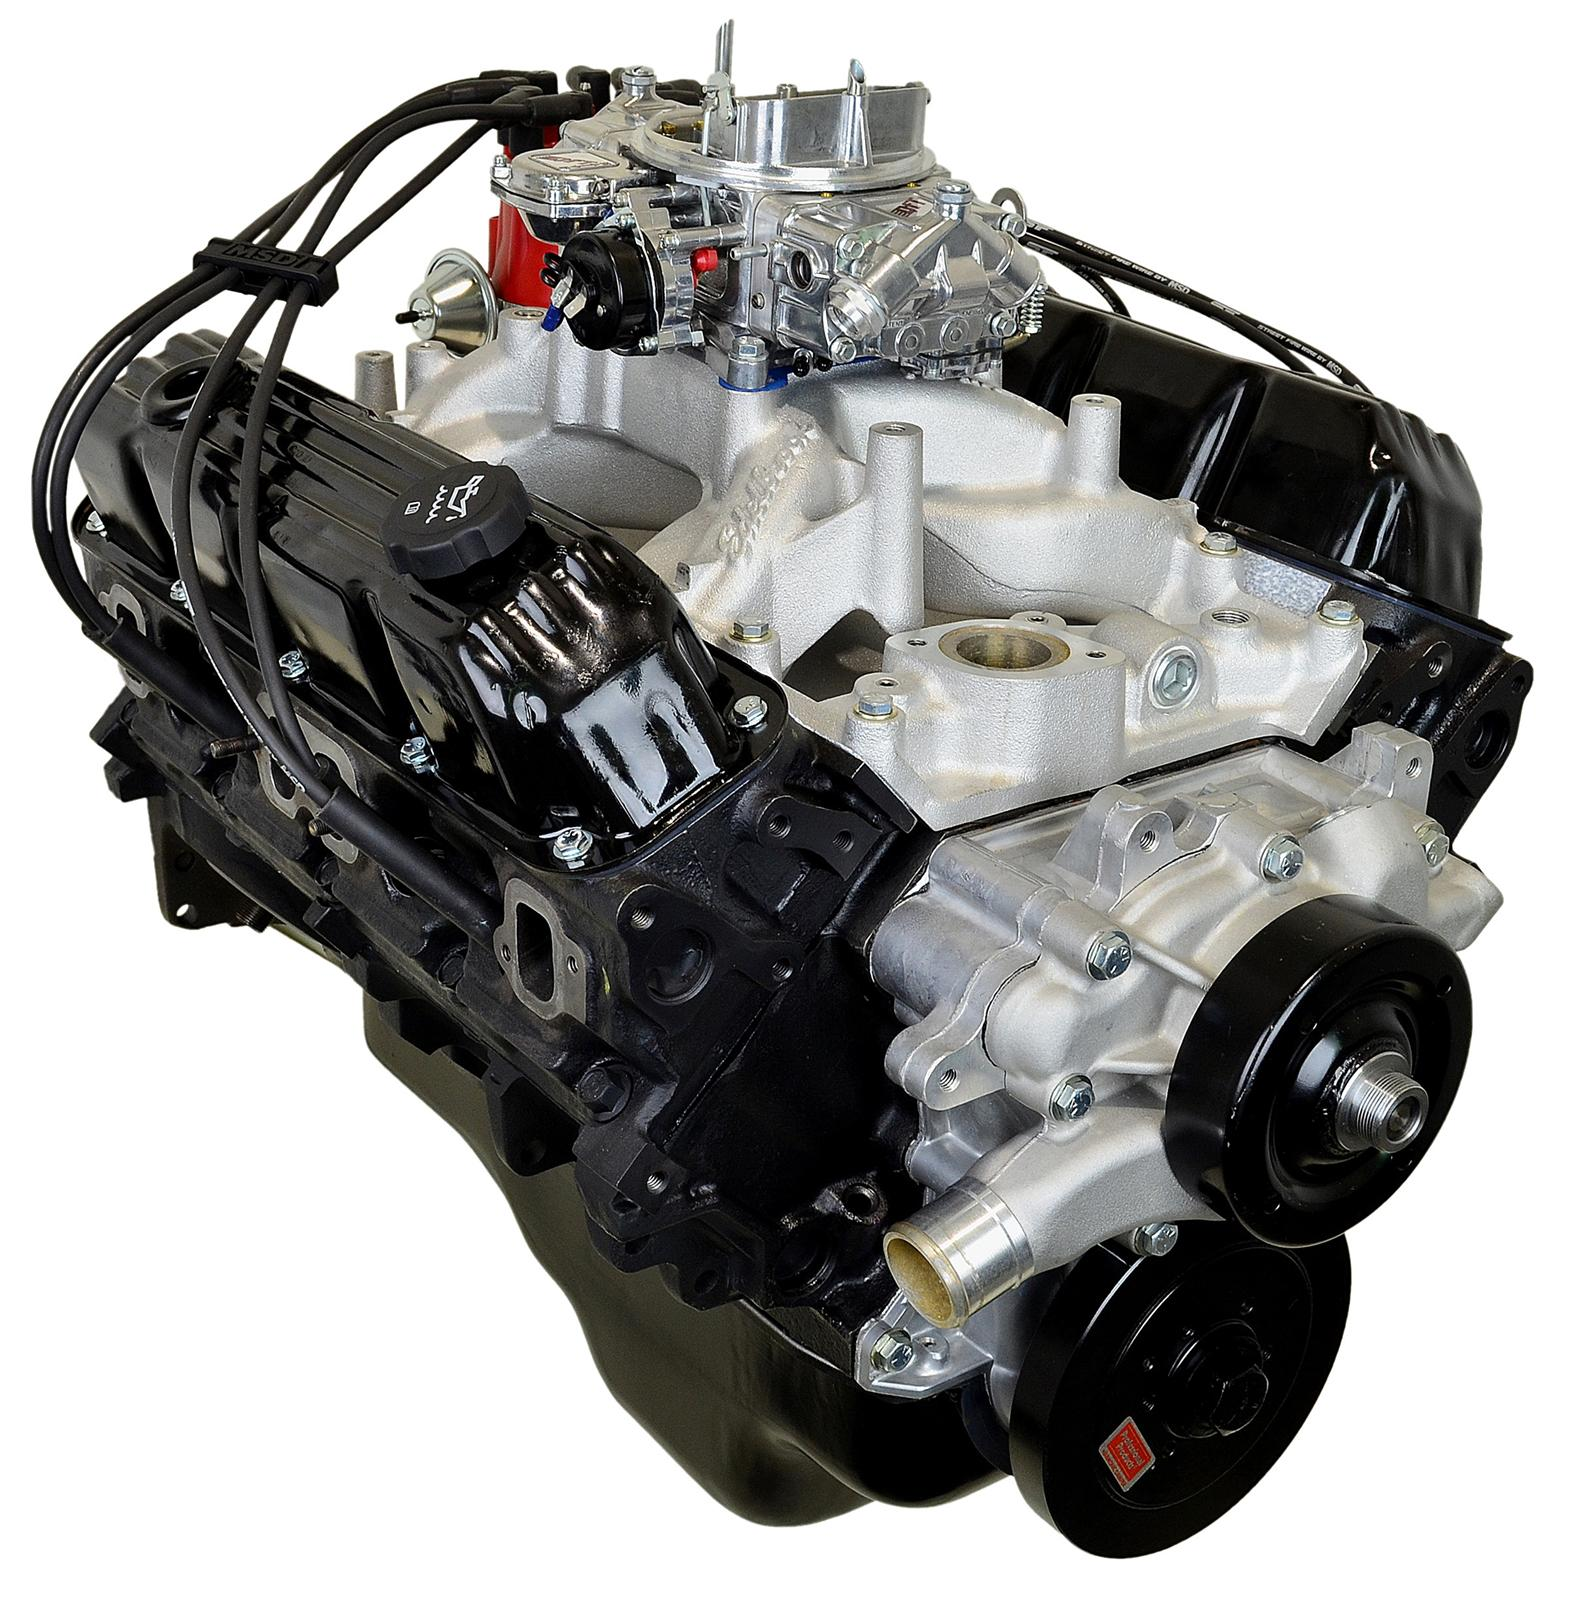 mopar crate engines 360 mopar free engine image for user manual download. Black Bedroom Furniture Sets. Home Design Ideas